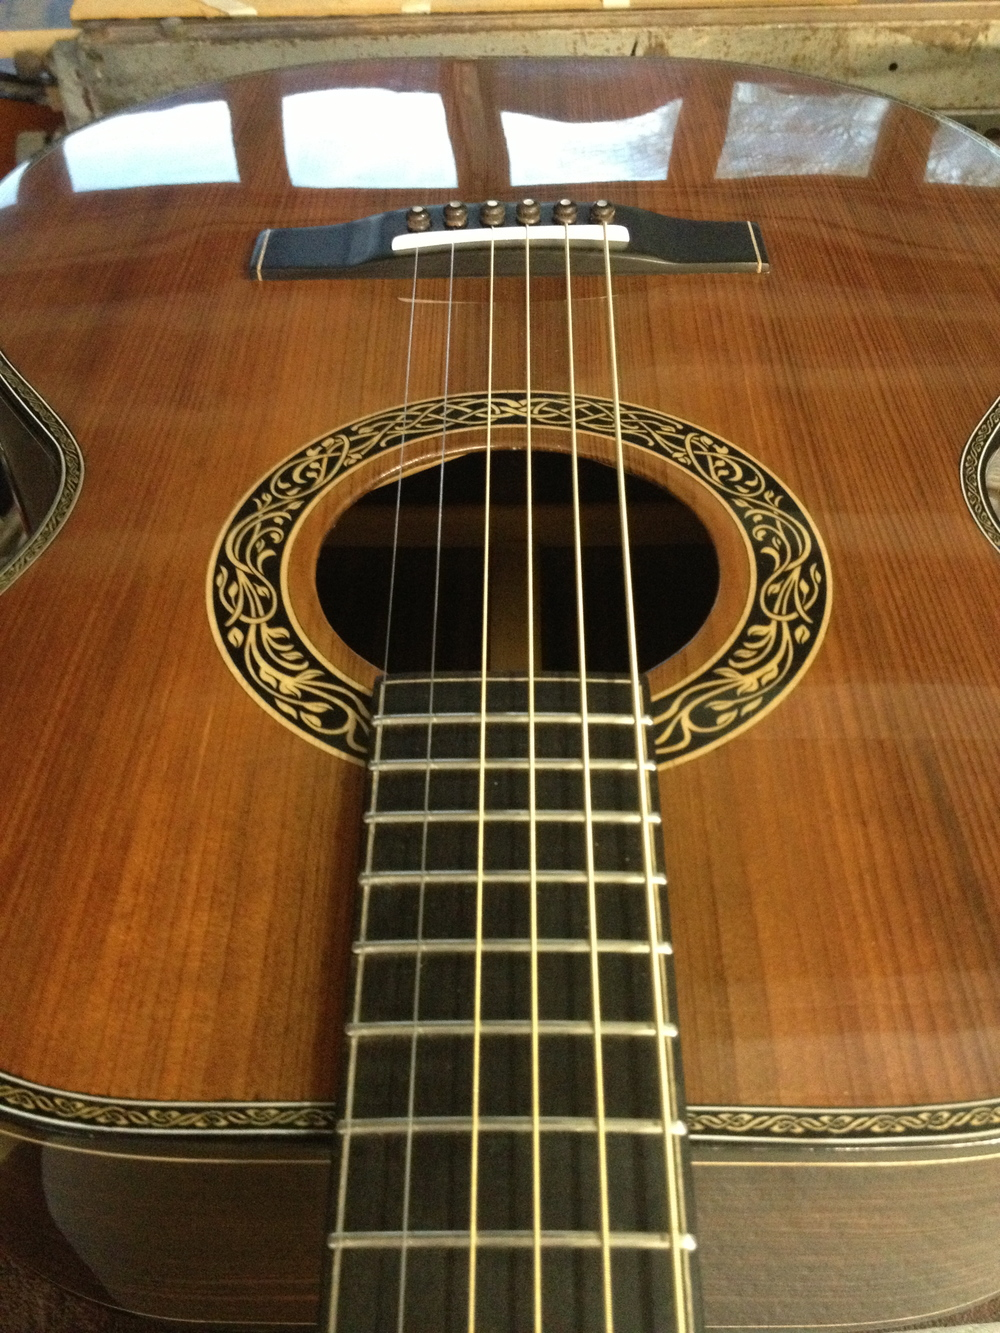 00-DM acoustic steel string guitar by Dey Martin.